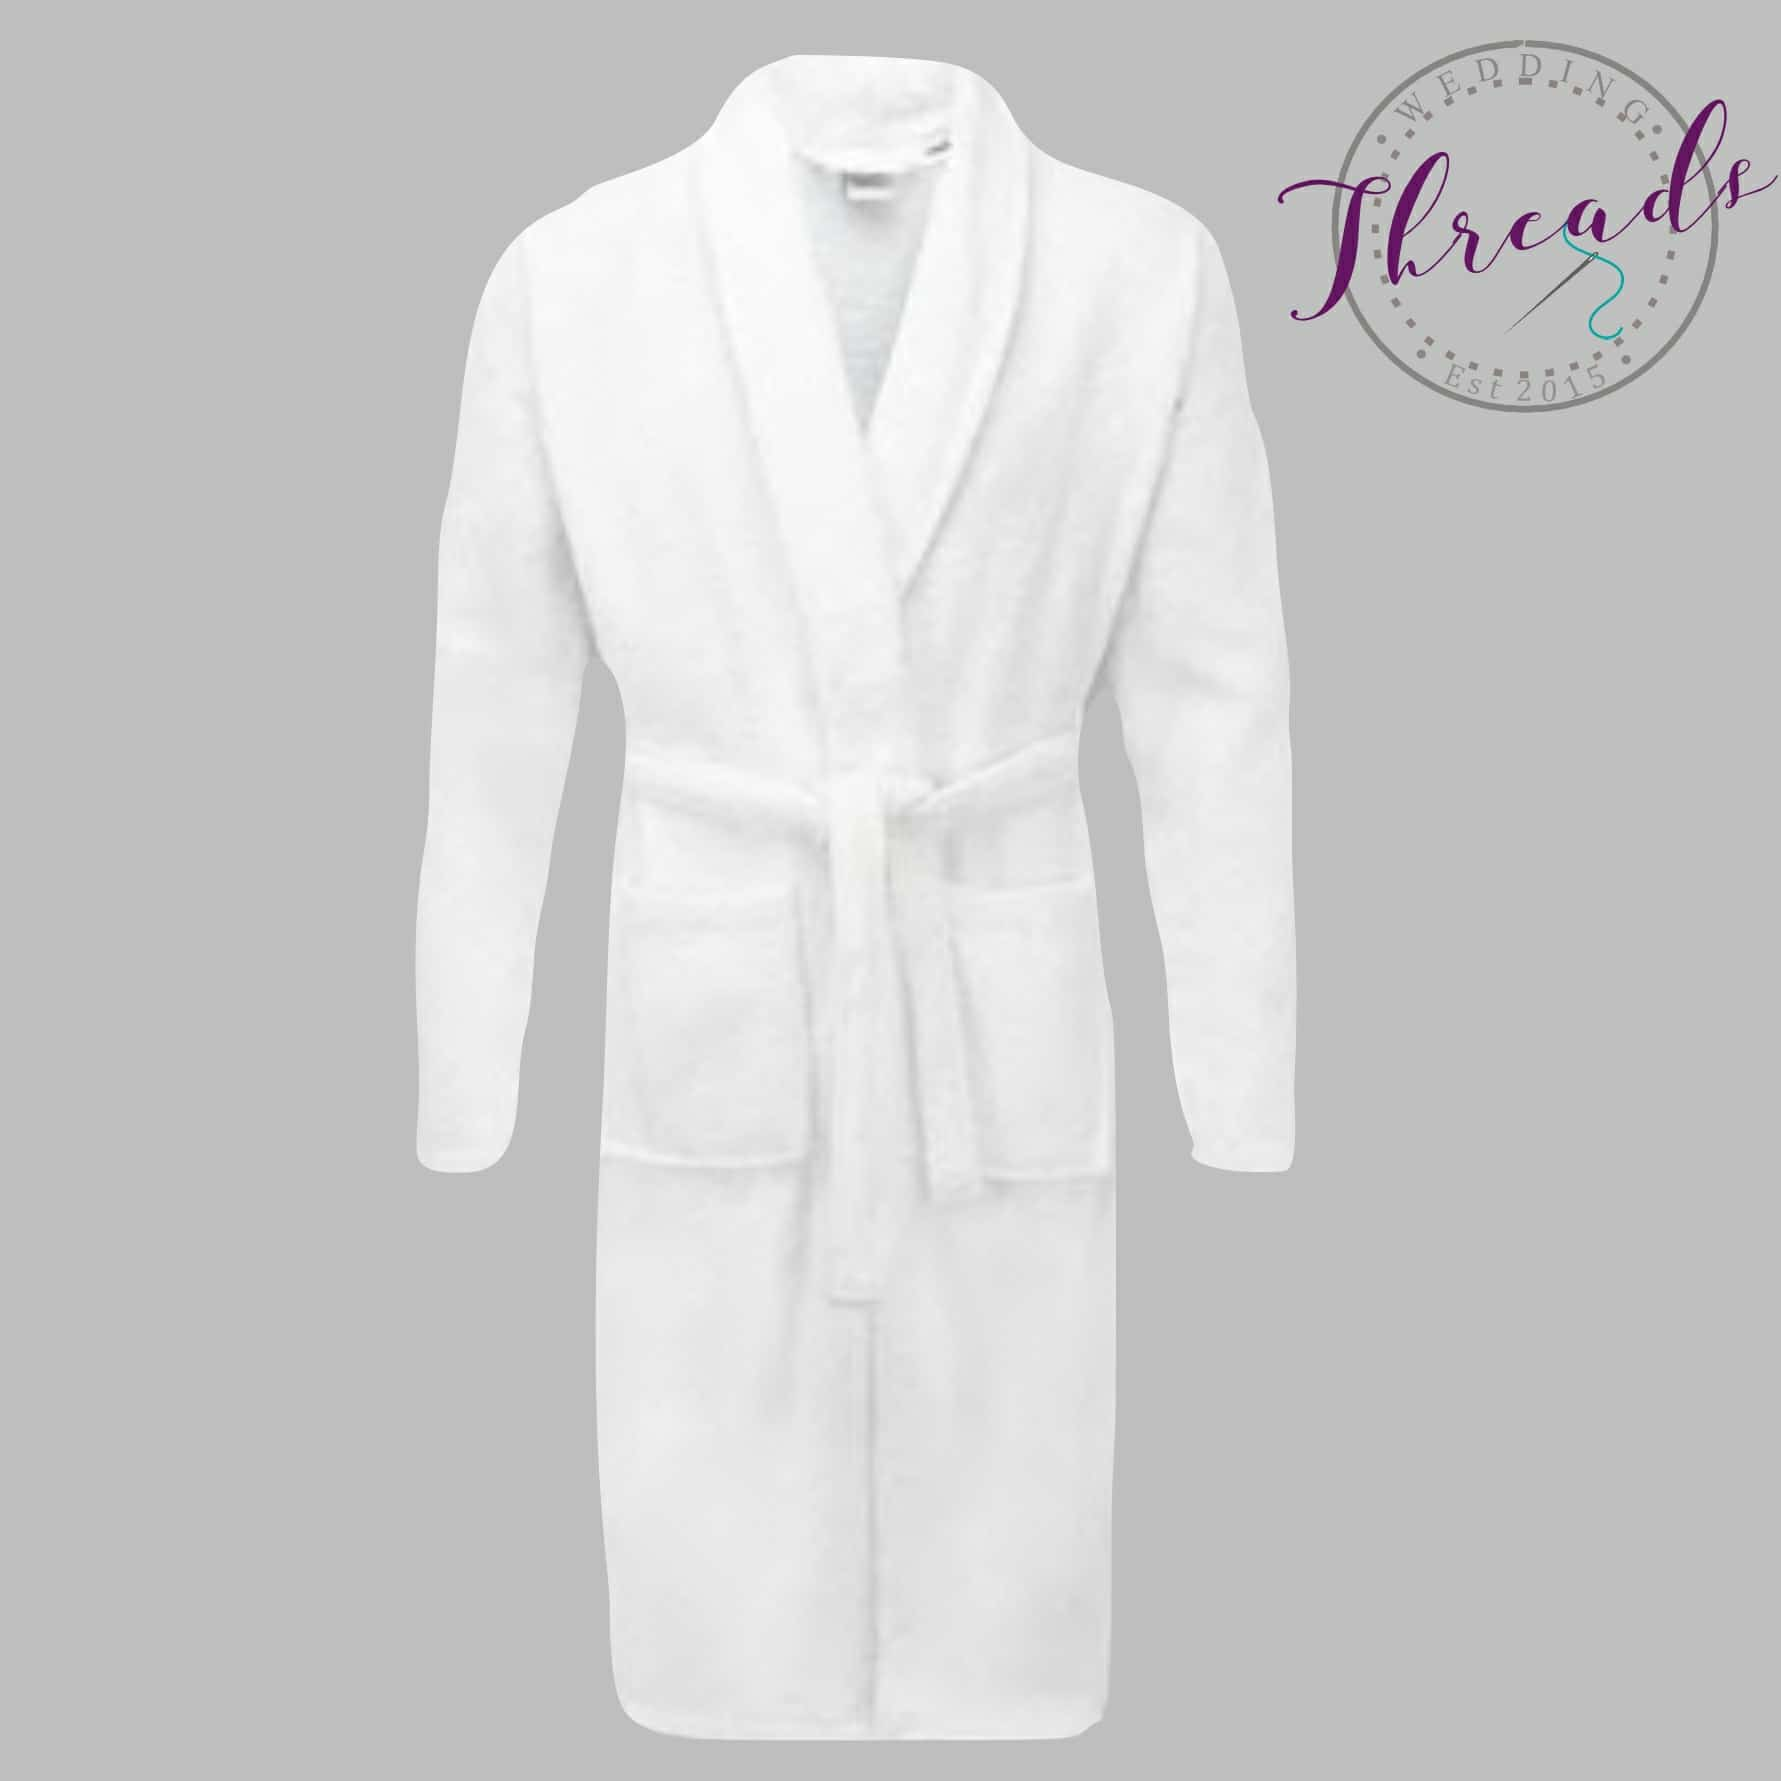 Personalised terry toweling robe, Bridal wedding dressing gown